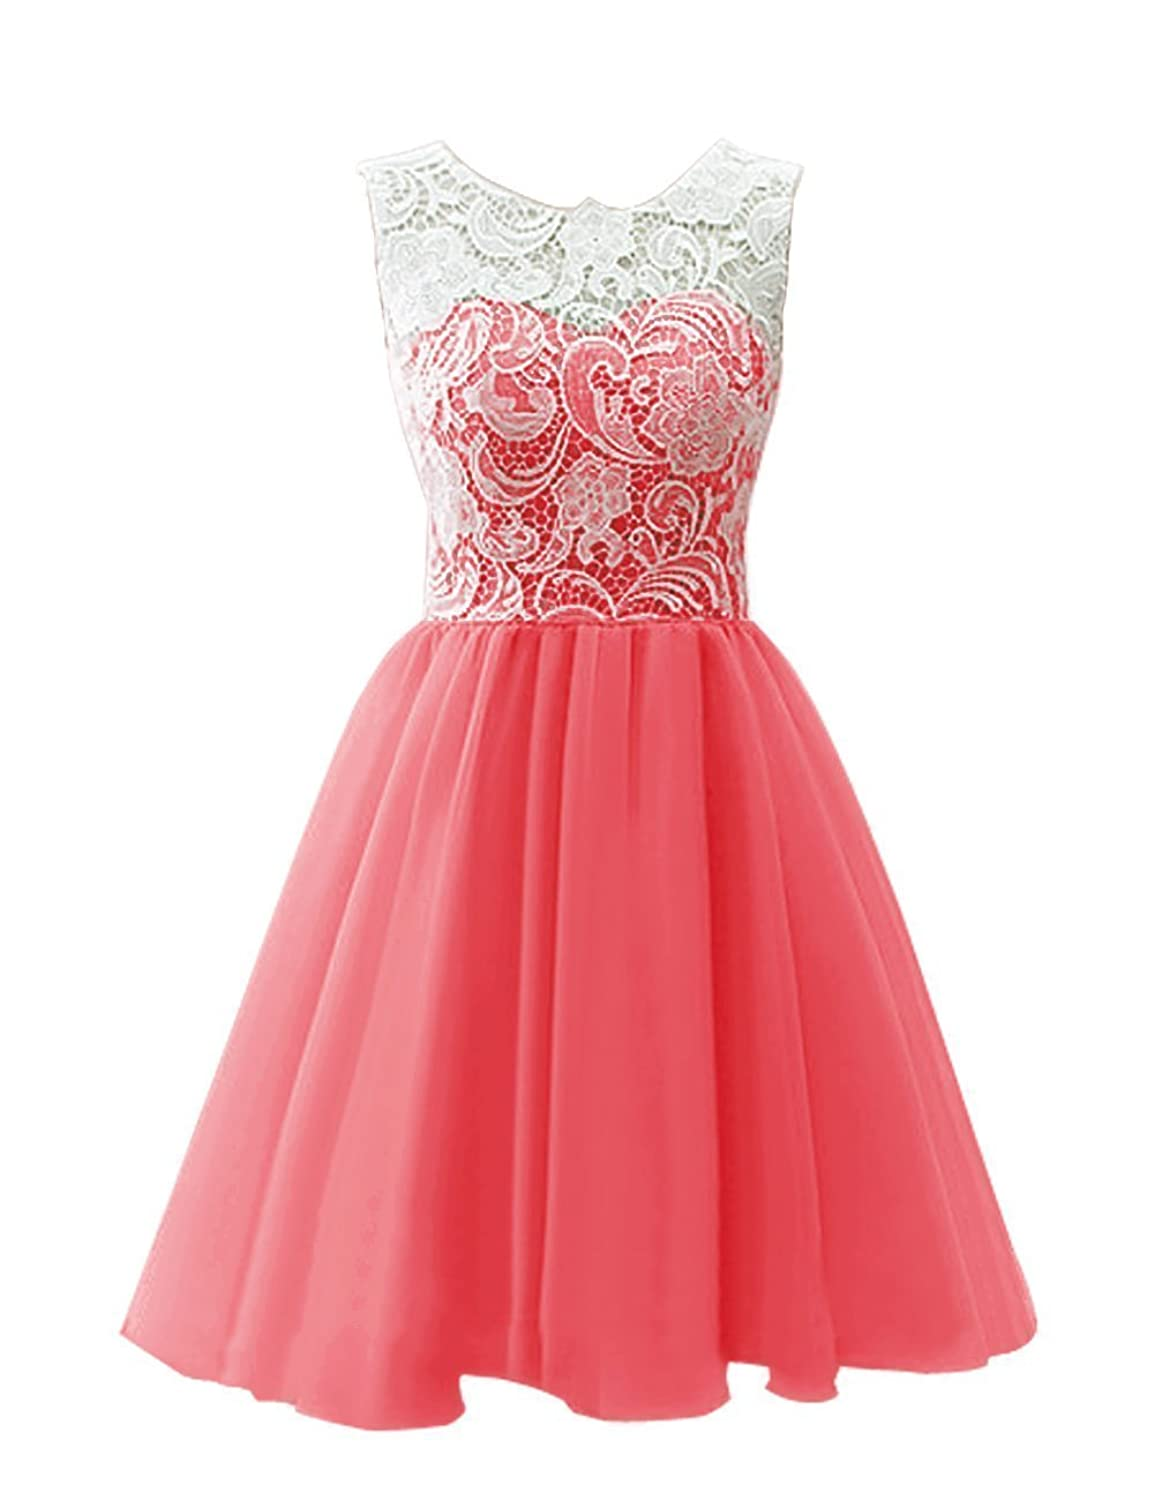 MicBridal? Short Lace and Tulle Party Dress Evening Gown for Girls&Women